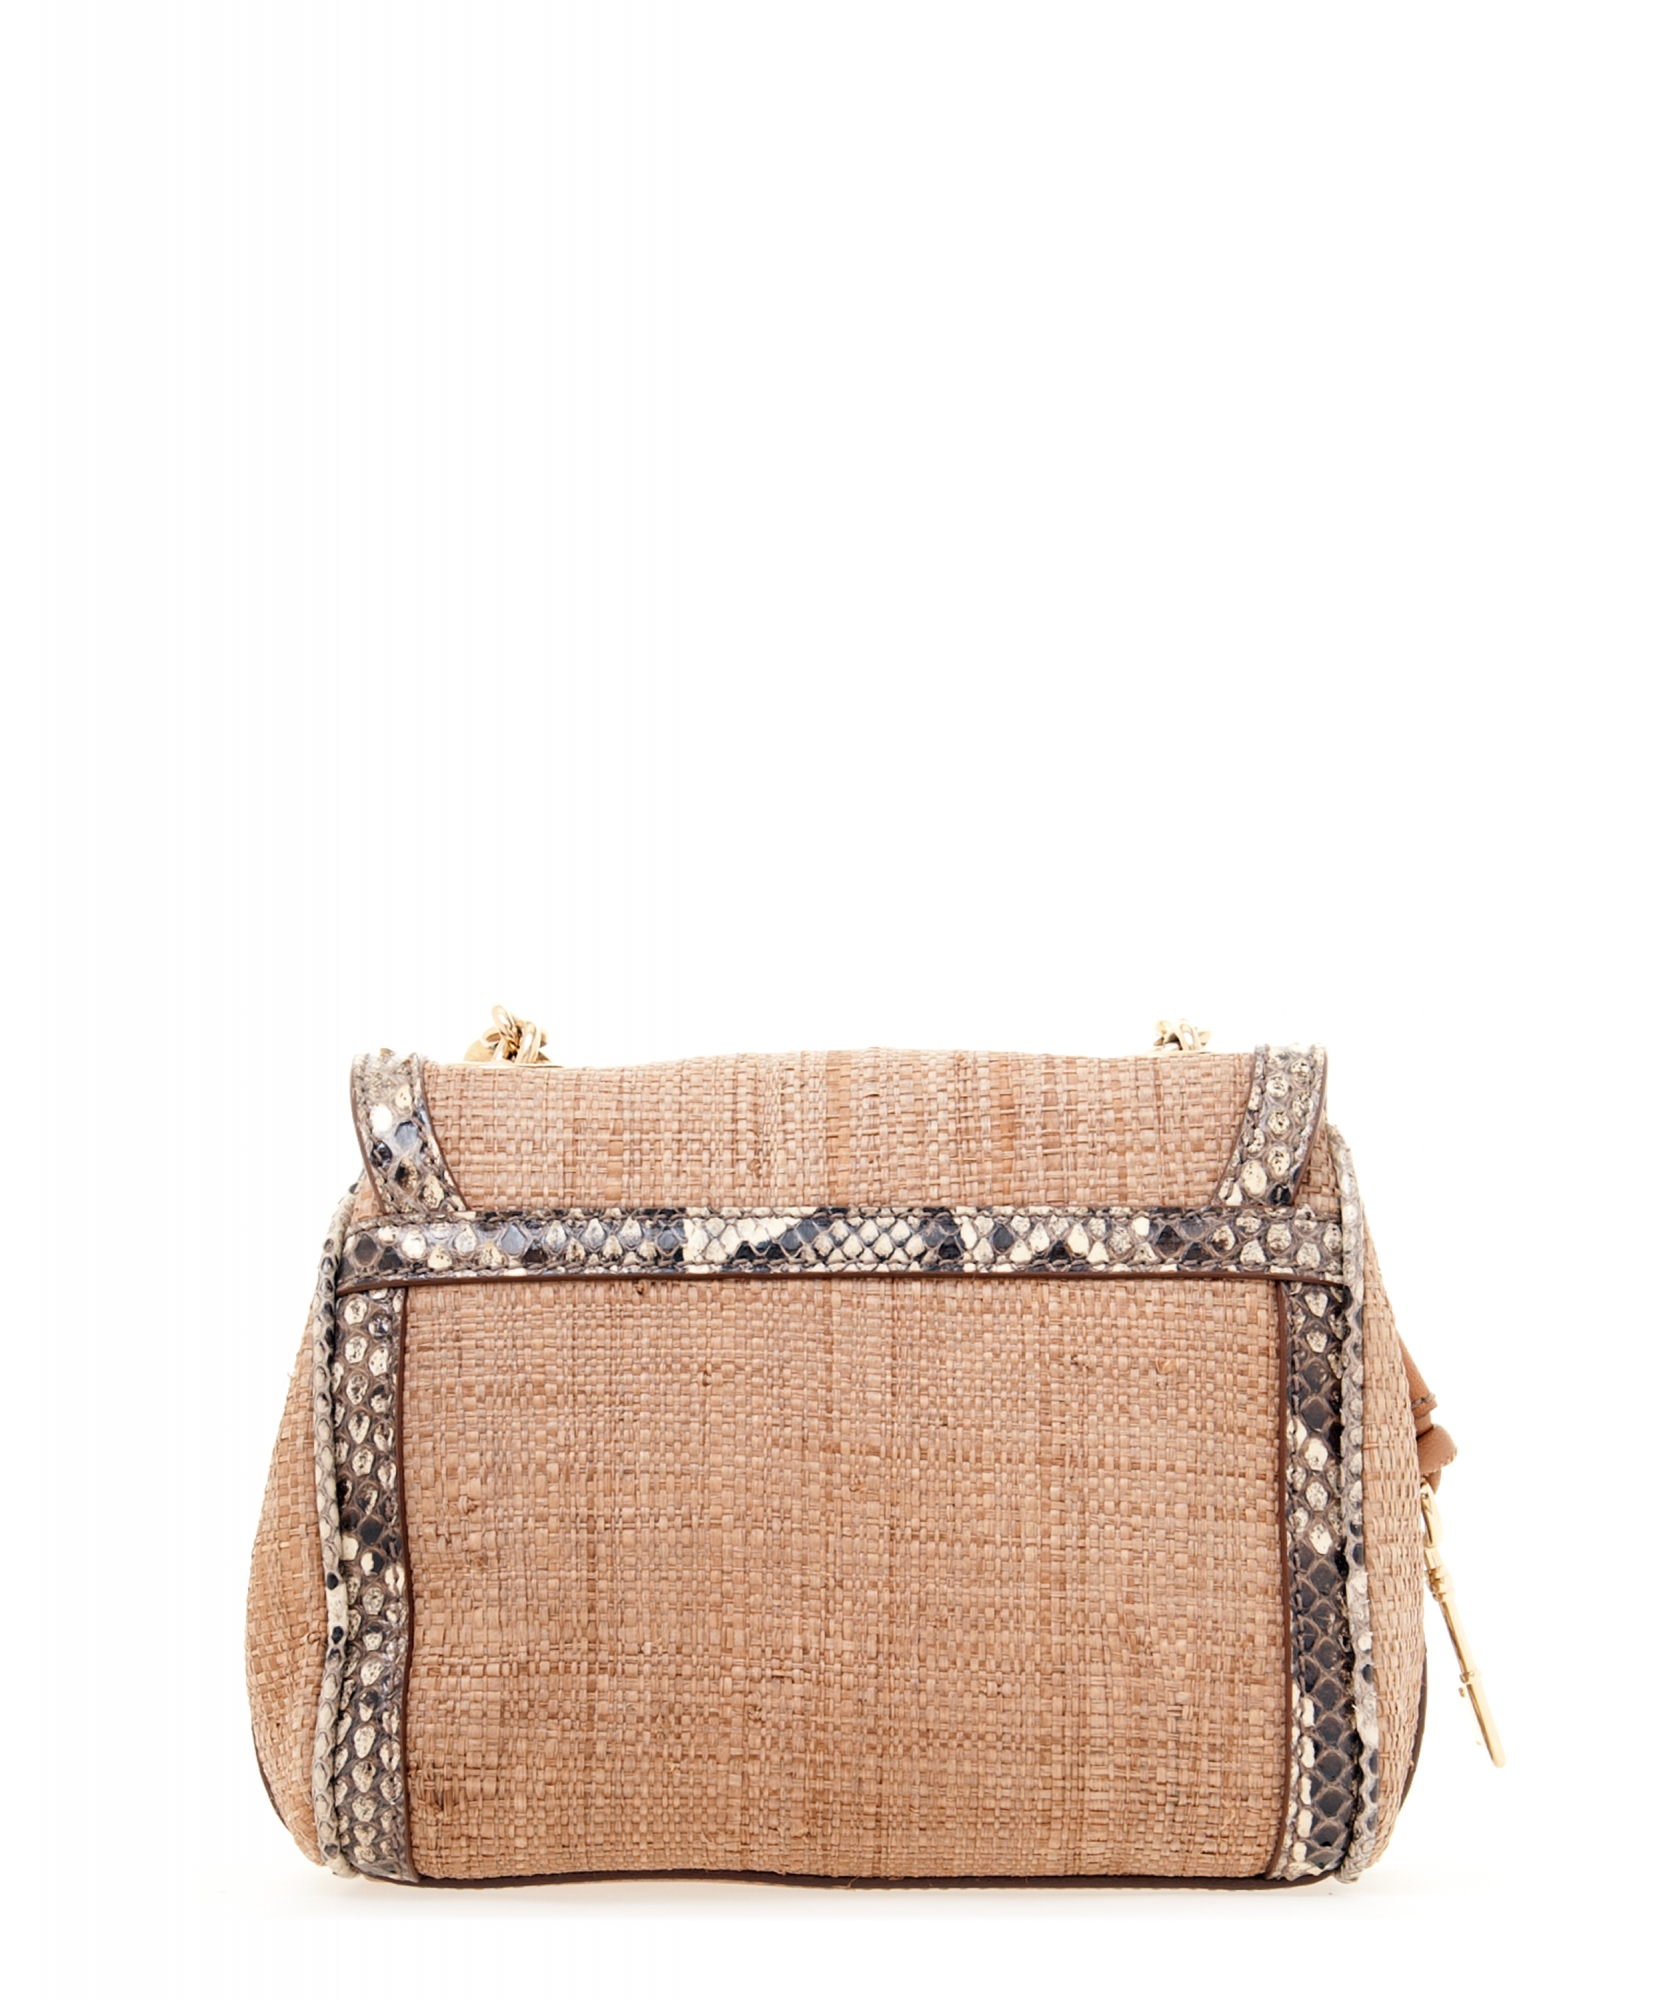 09605bc9b681 Shoulder Bags Dolce Gabbana Raffia Miss Dolce Bag. Tap to expand brand ...